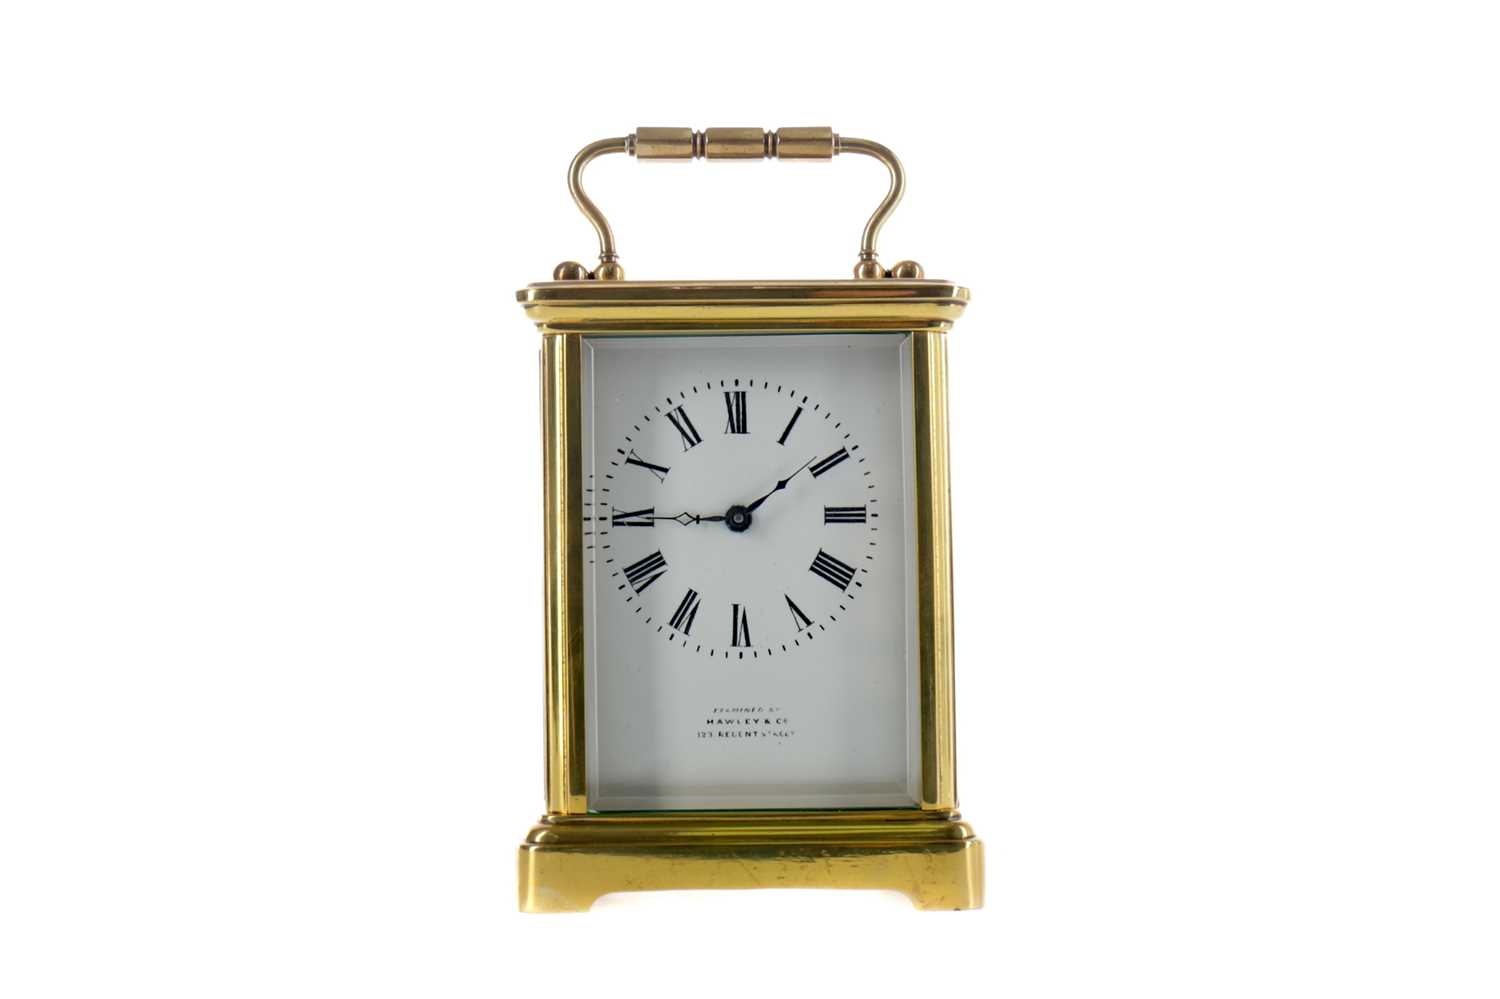 Lot 1753 - AN EARLY 20TH CENTURY CARRIAGE CLOCK